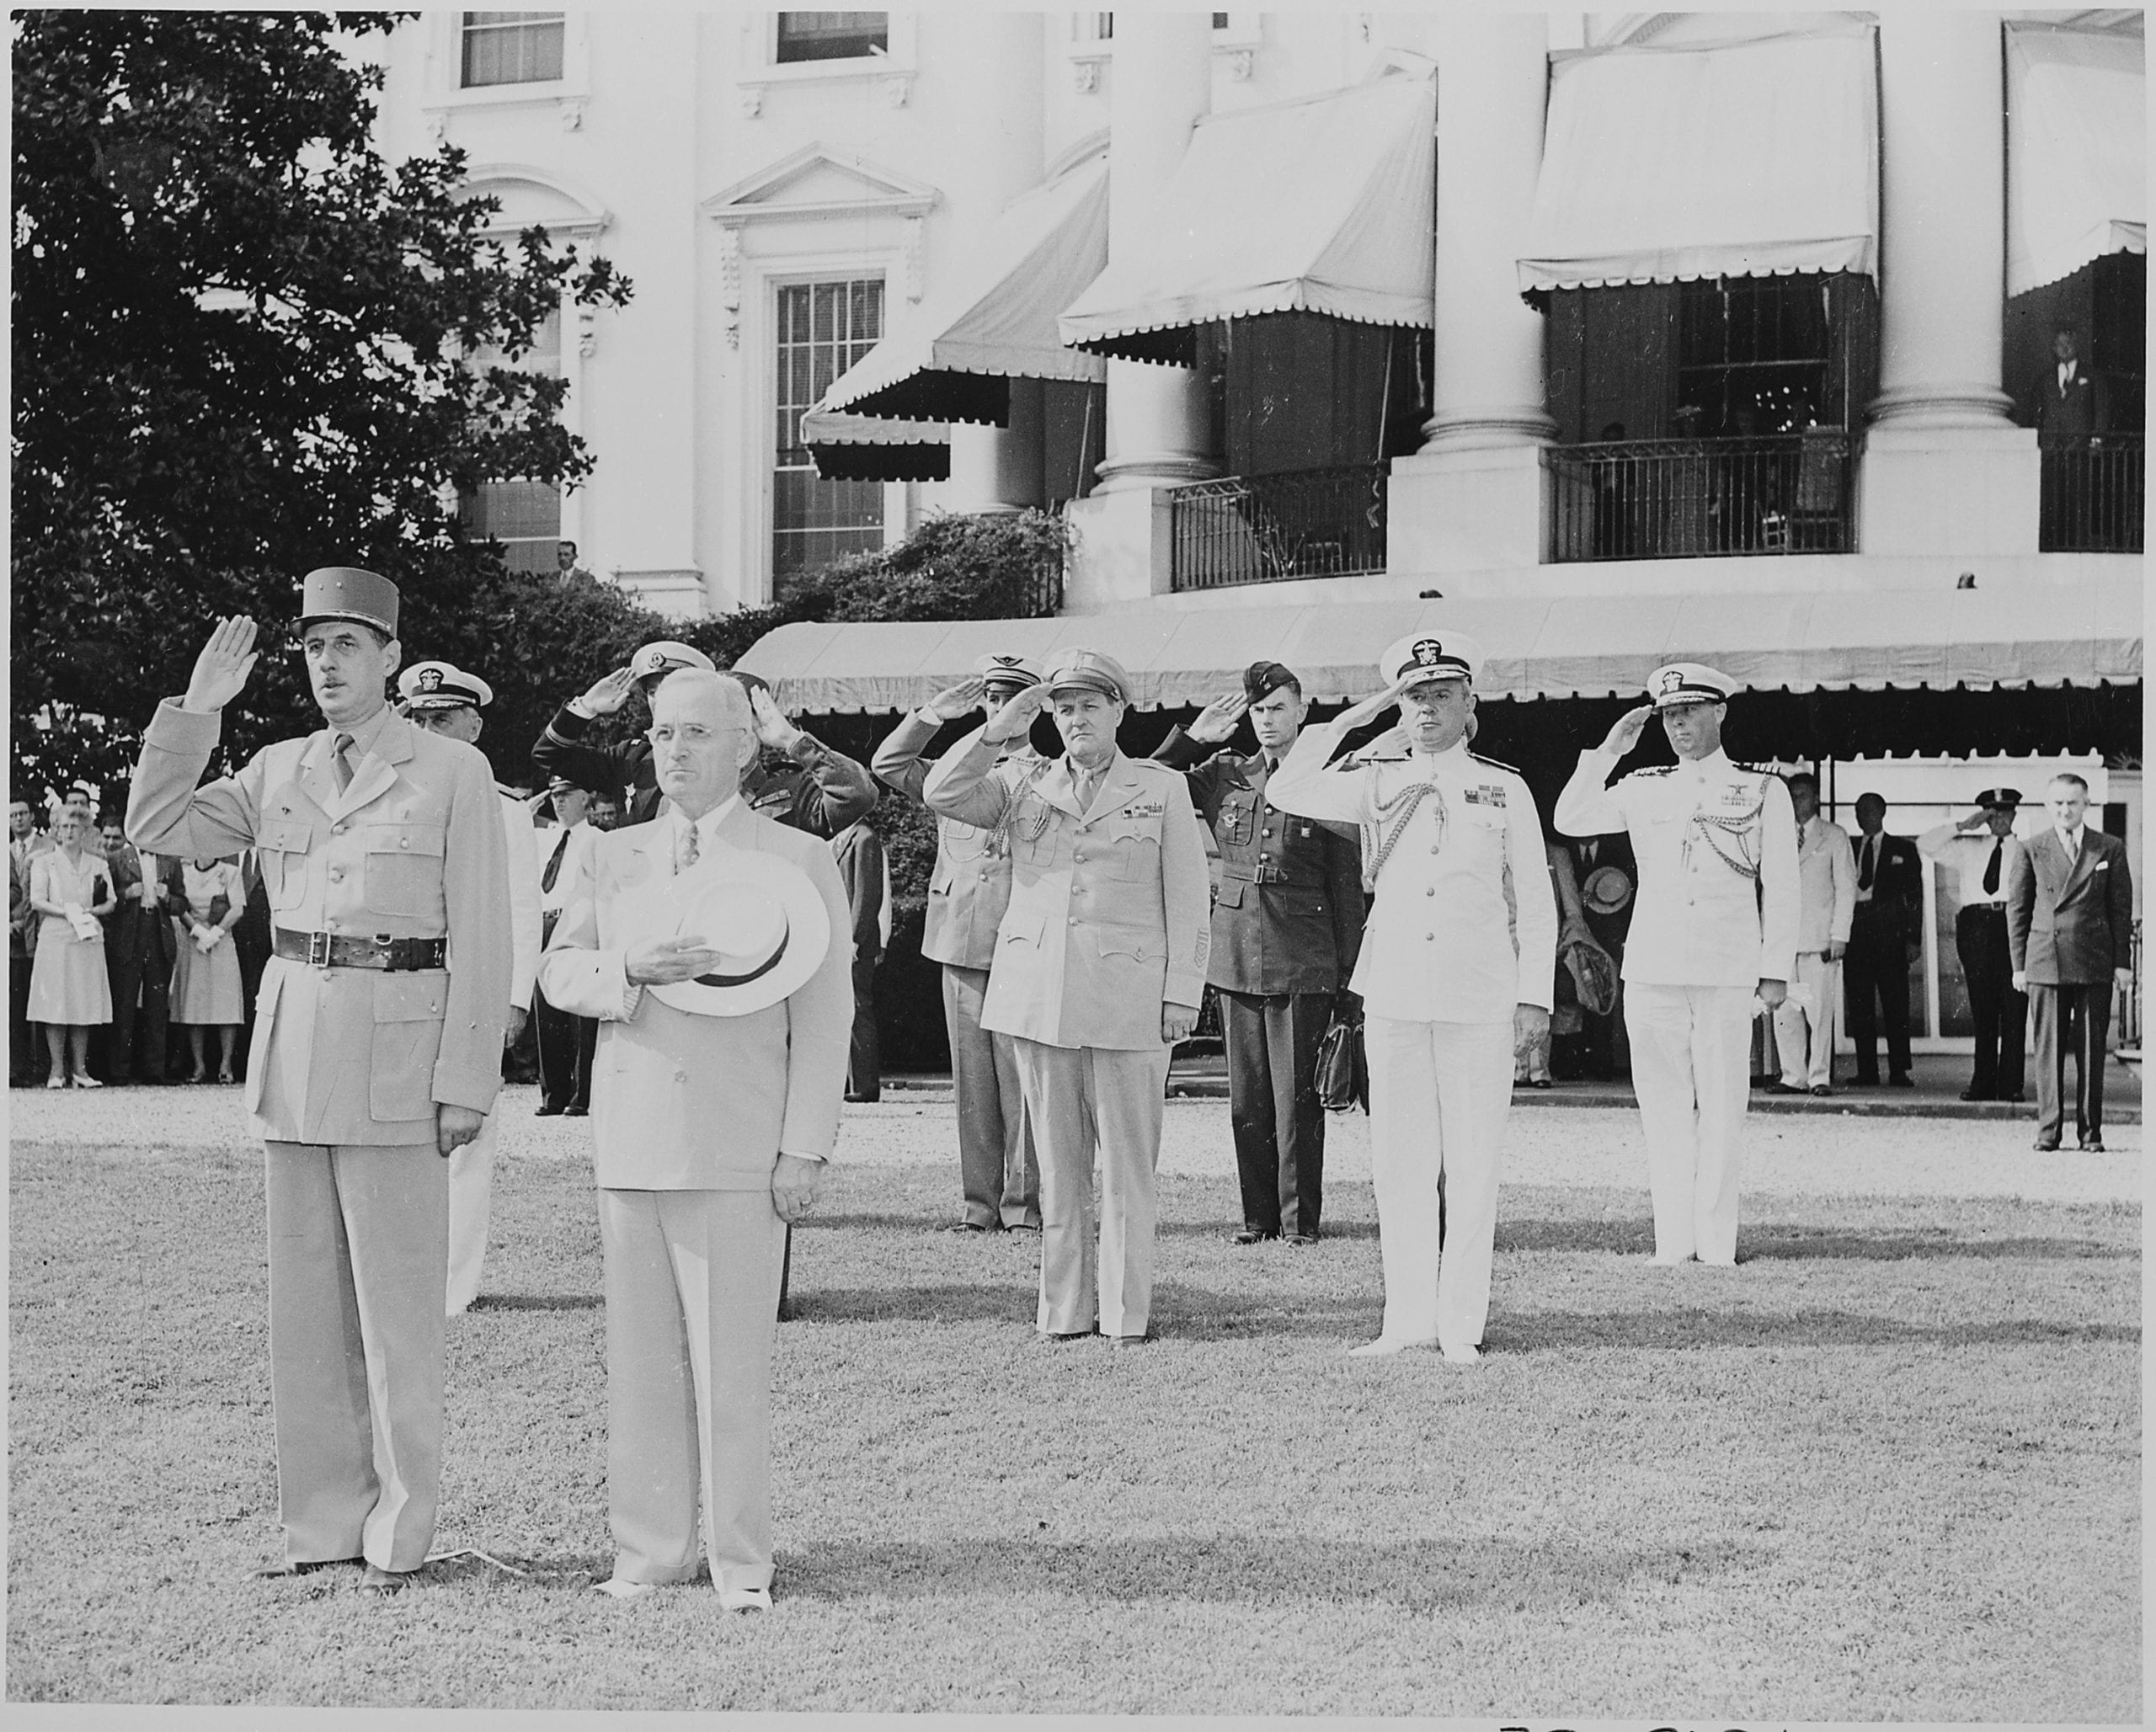 Photograph of President Truman and French President Charles de Gaulle, during welcoming ceremonies on the White House lawn, with officers saluting in the background. (August 22nd, 1945)